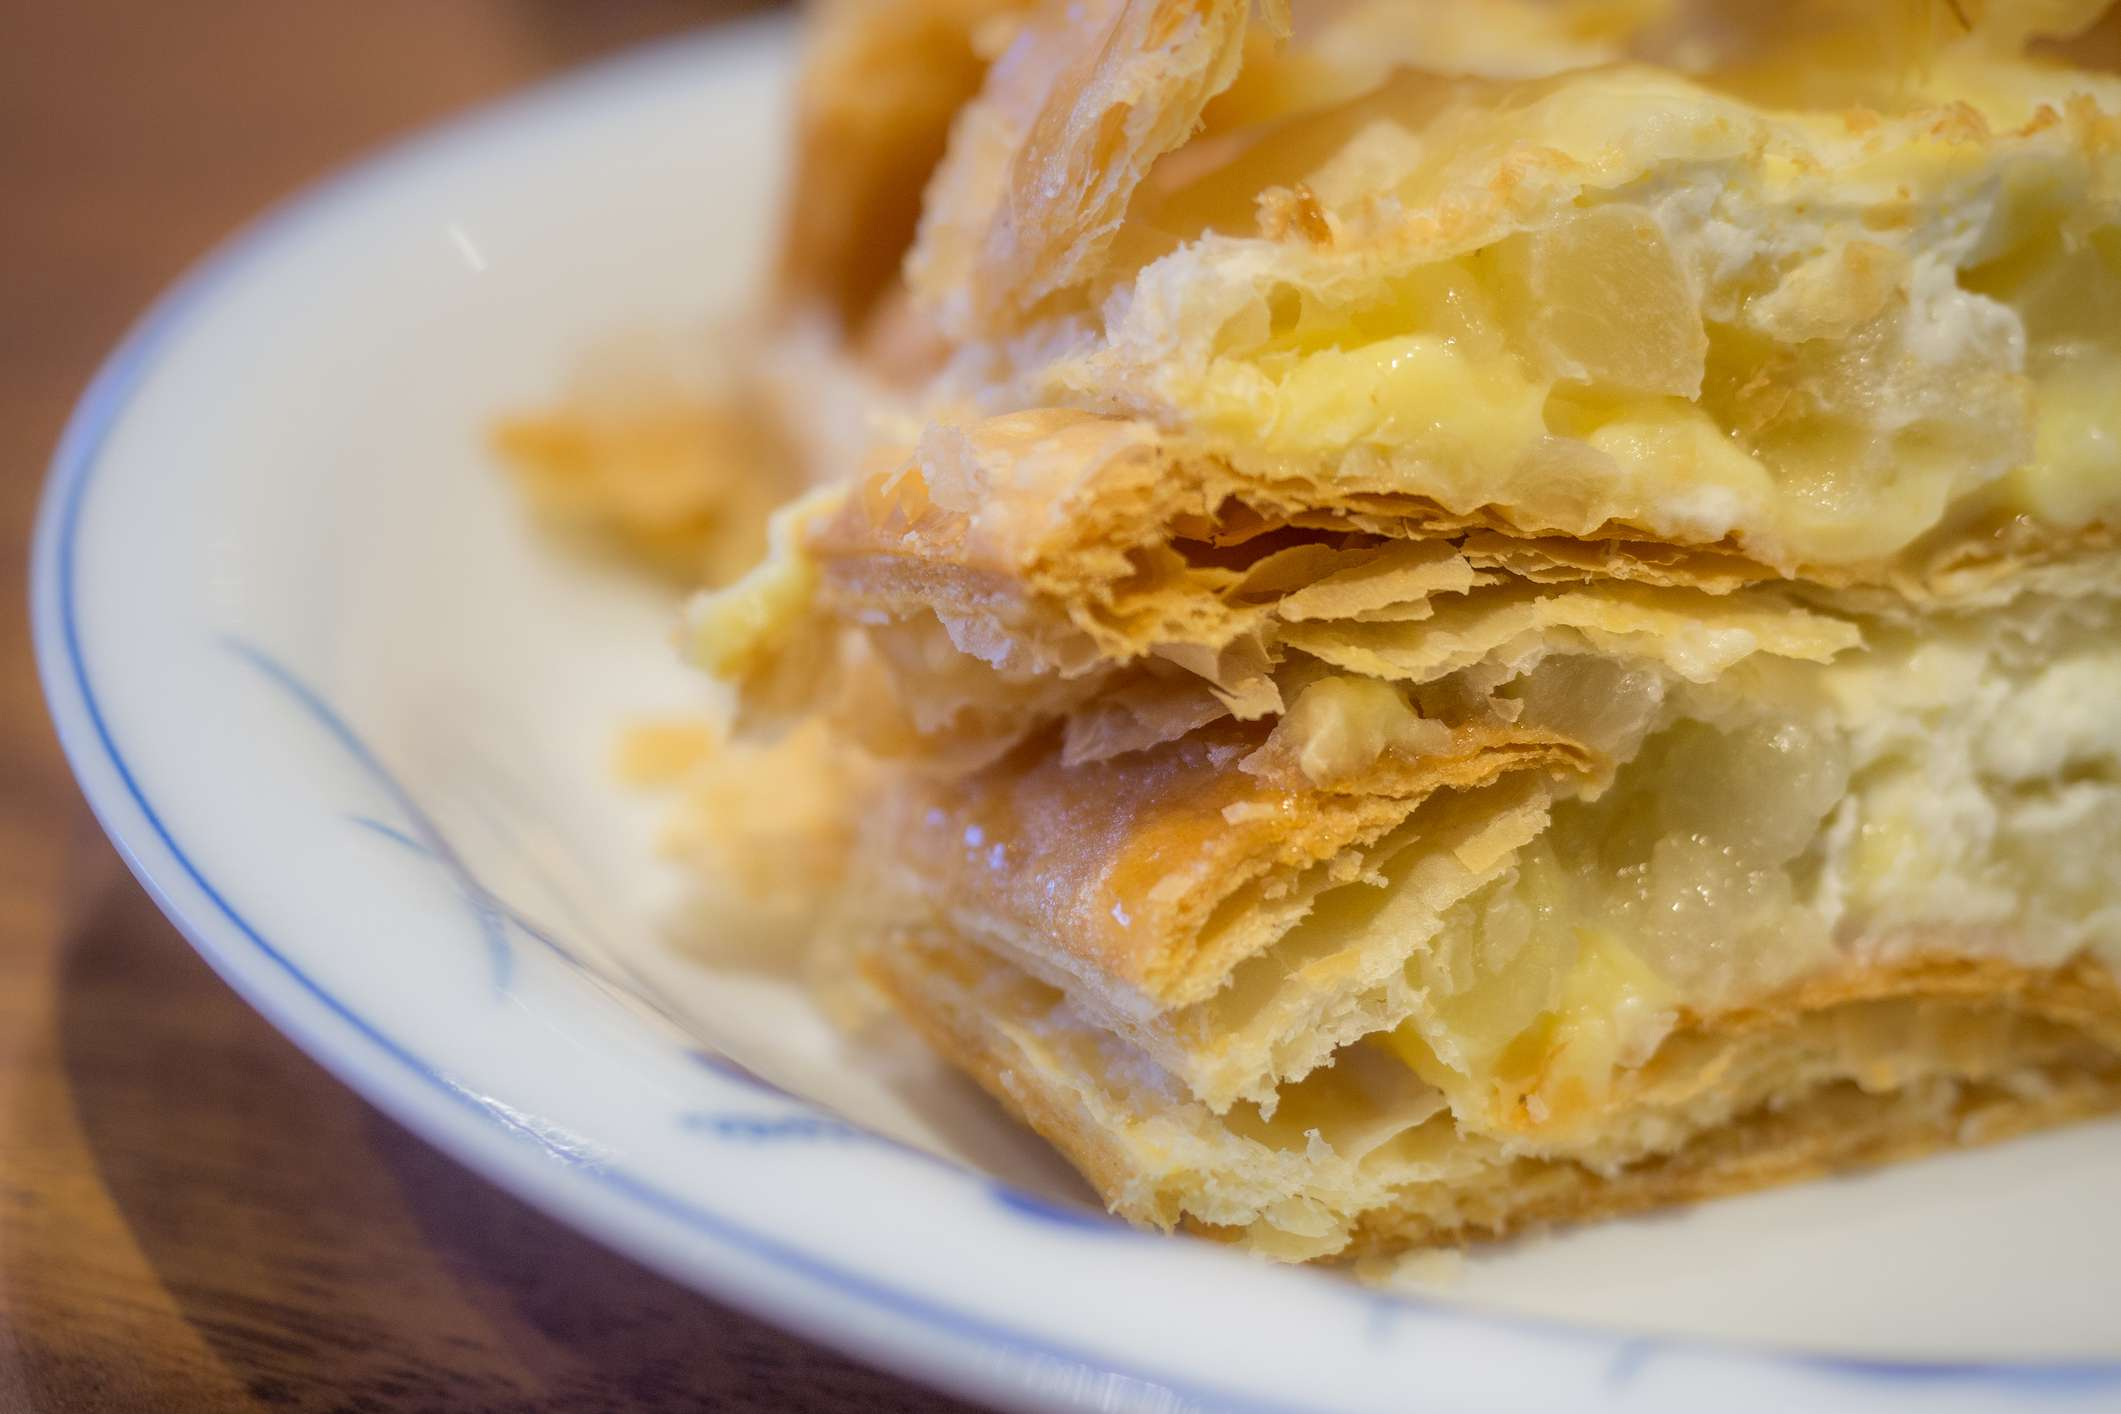 A strudel is a type of layered pastry with a filling that is usually sweet.